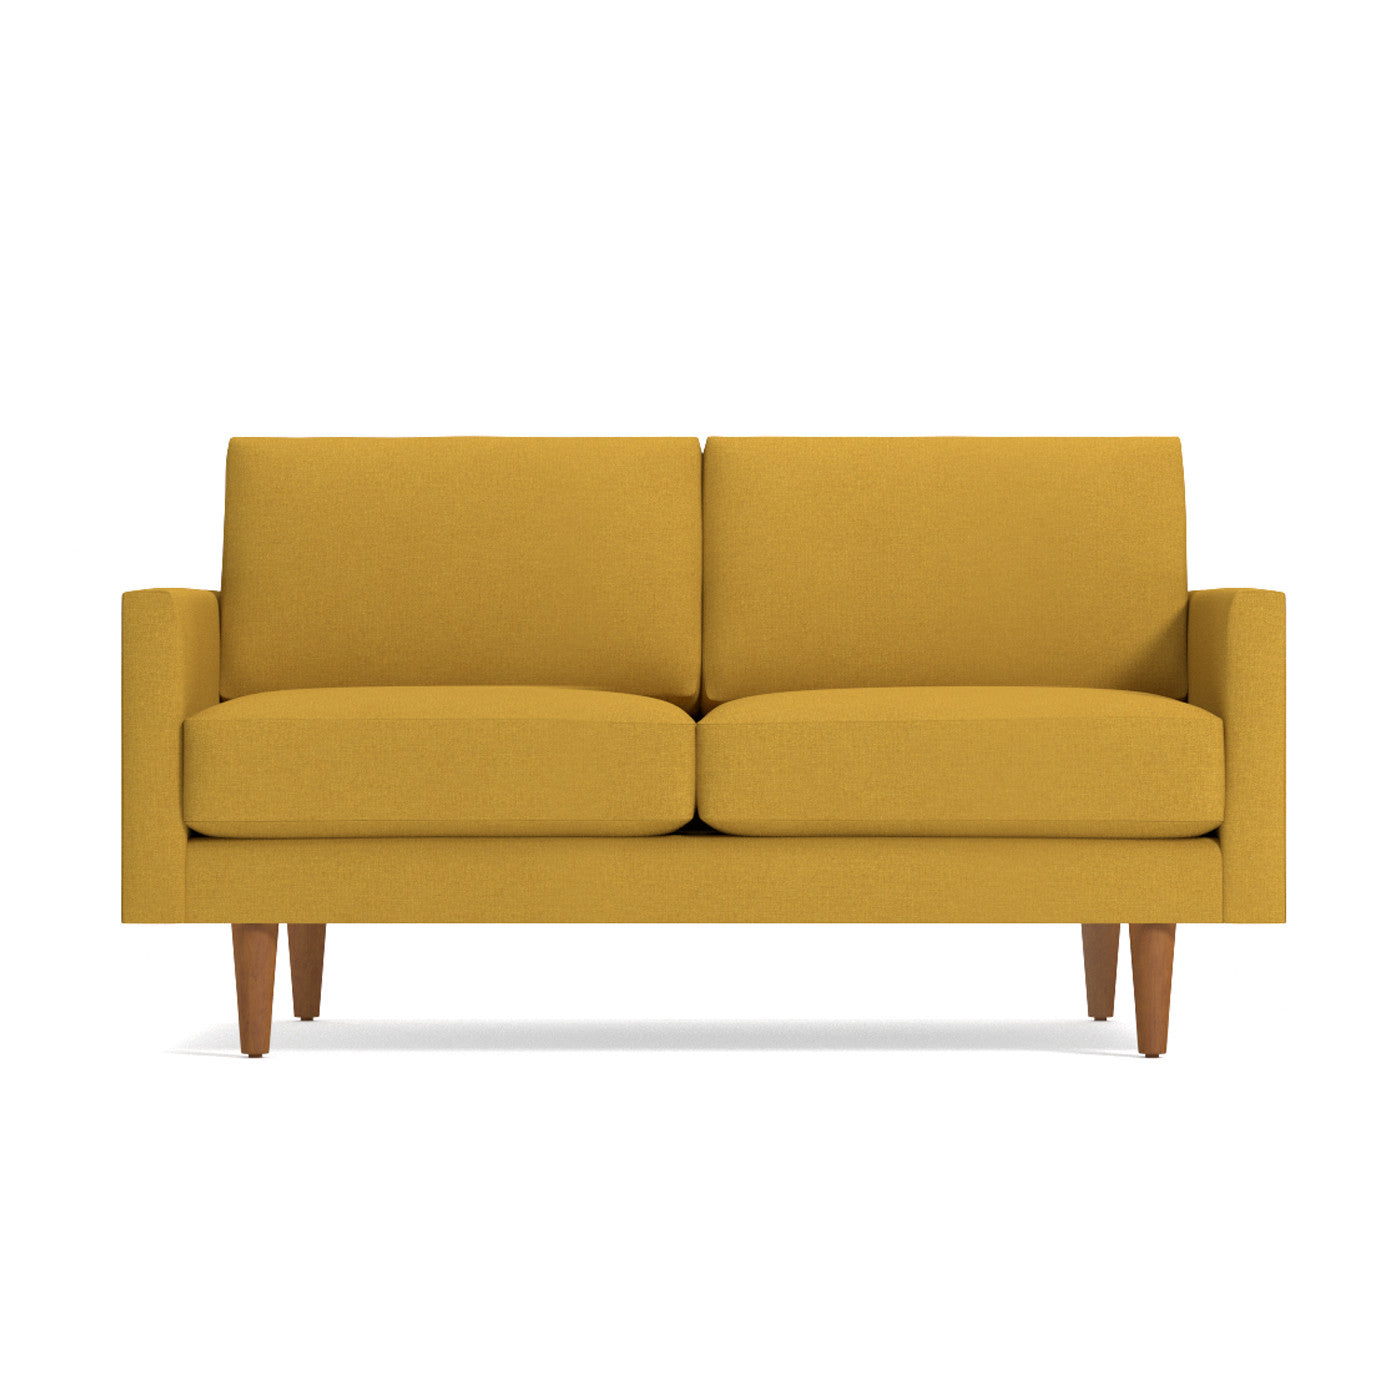 Scott Apartment Size Sofa from Kyle Schuneman CHOICE OF FABRICS